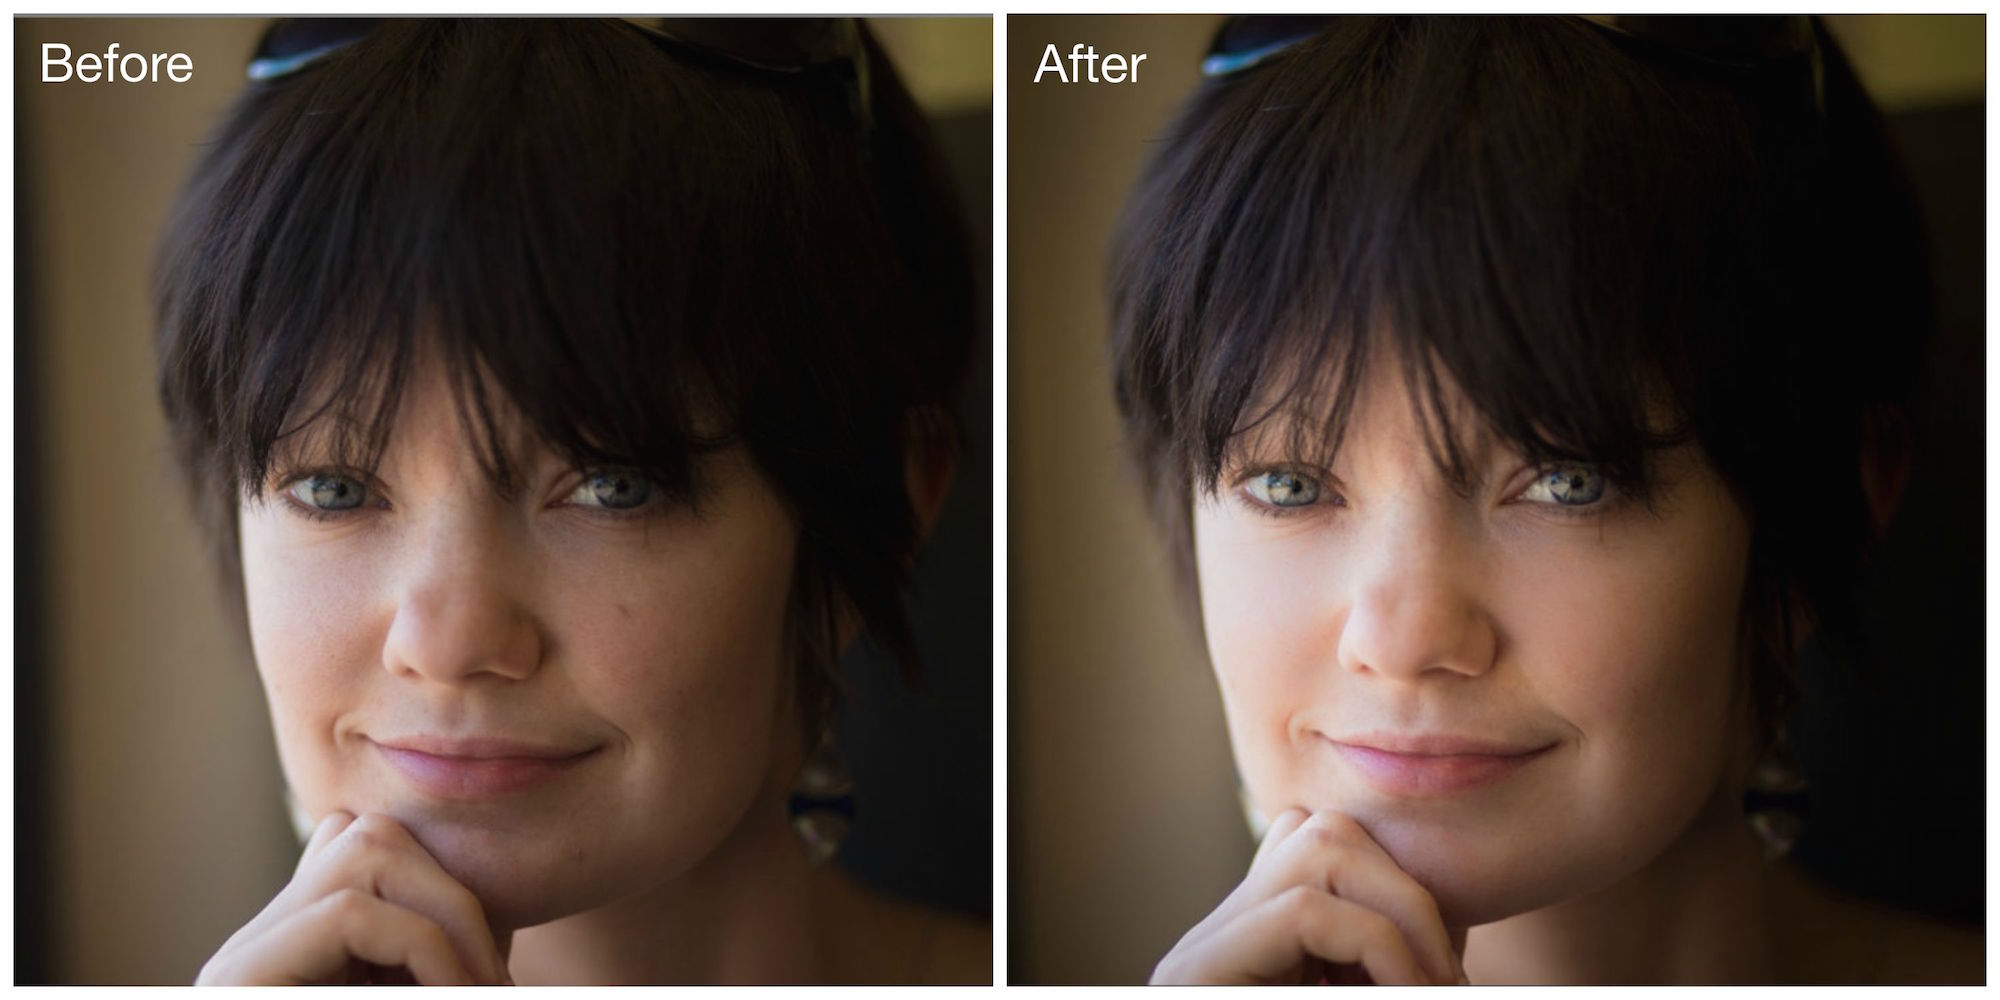 Lightroom Skin Blemish Before and After